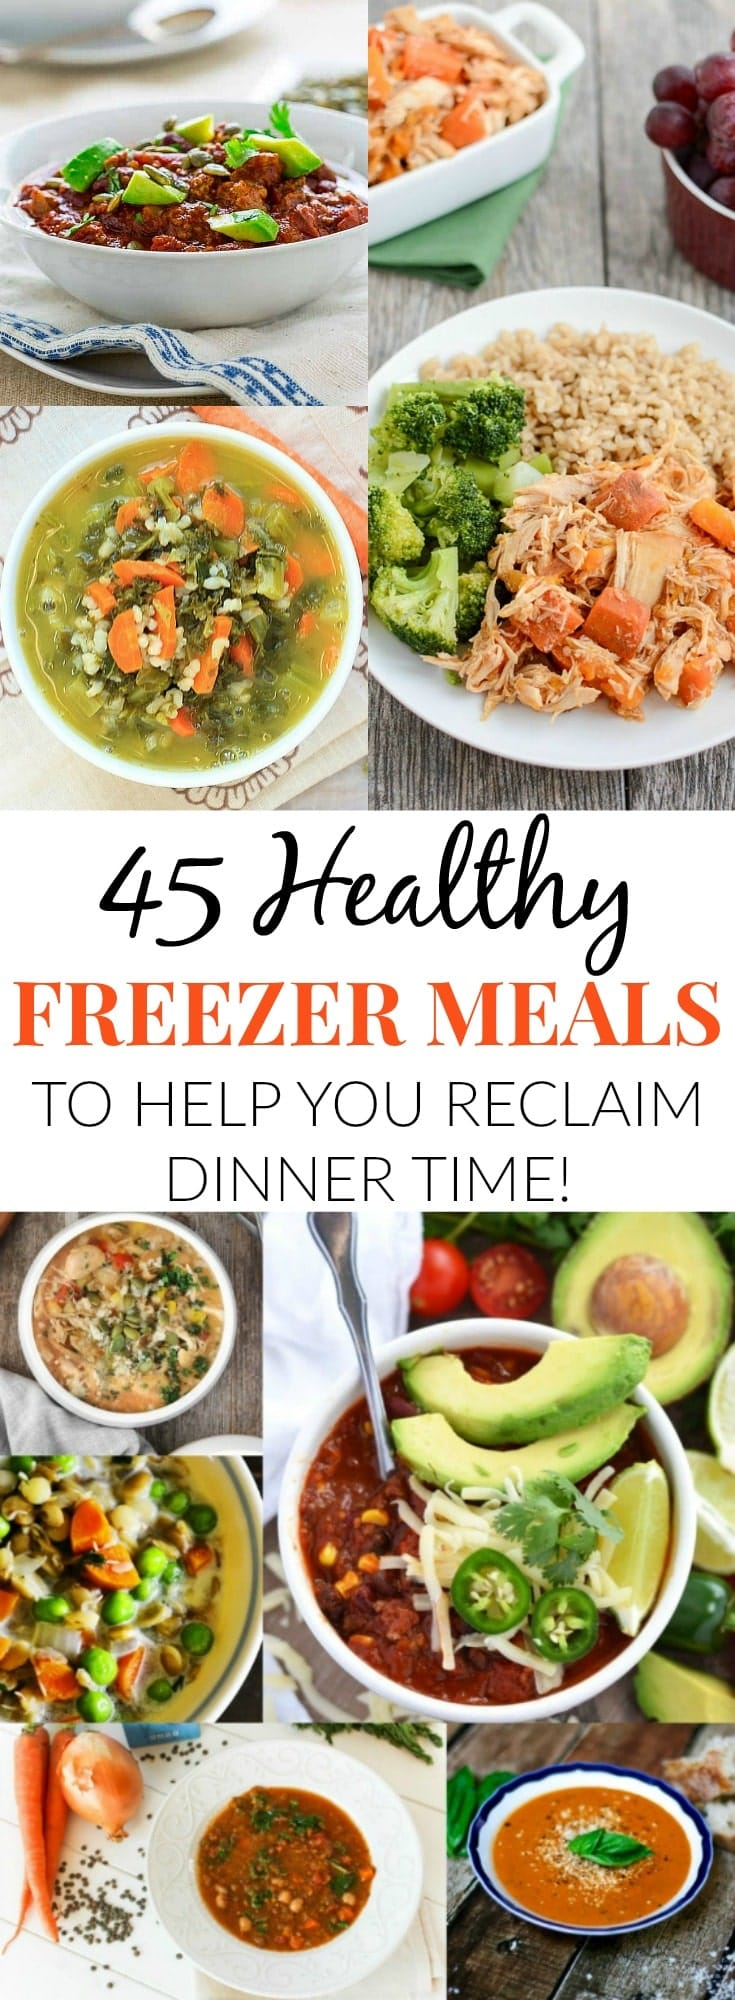 45 Healthy Freezer Meals To Help You Reclaim Dinner Time!